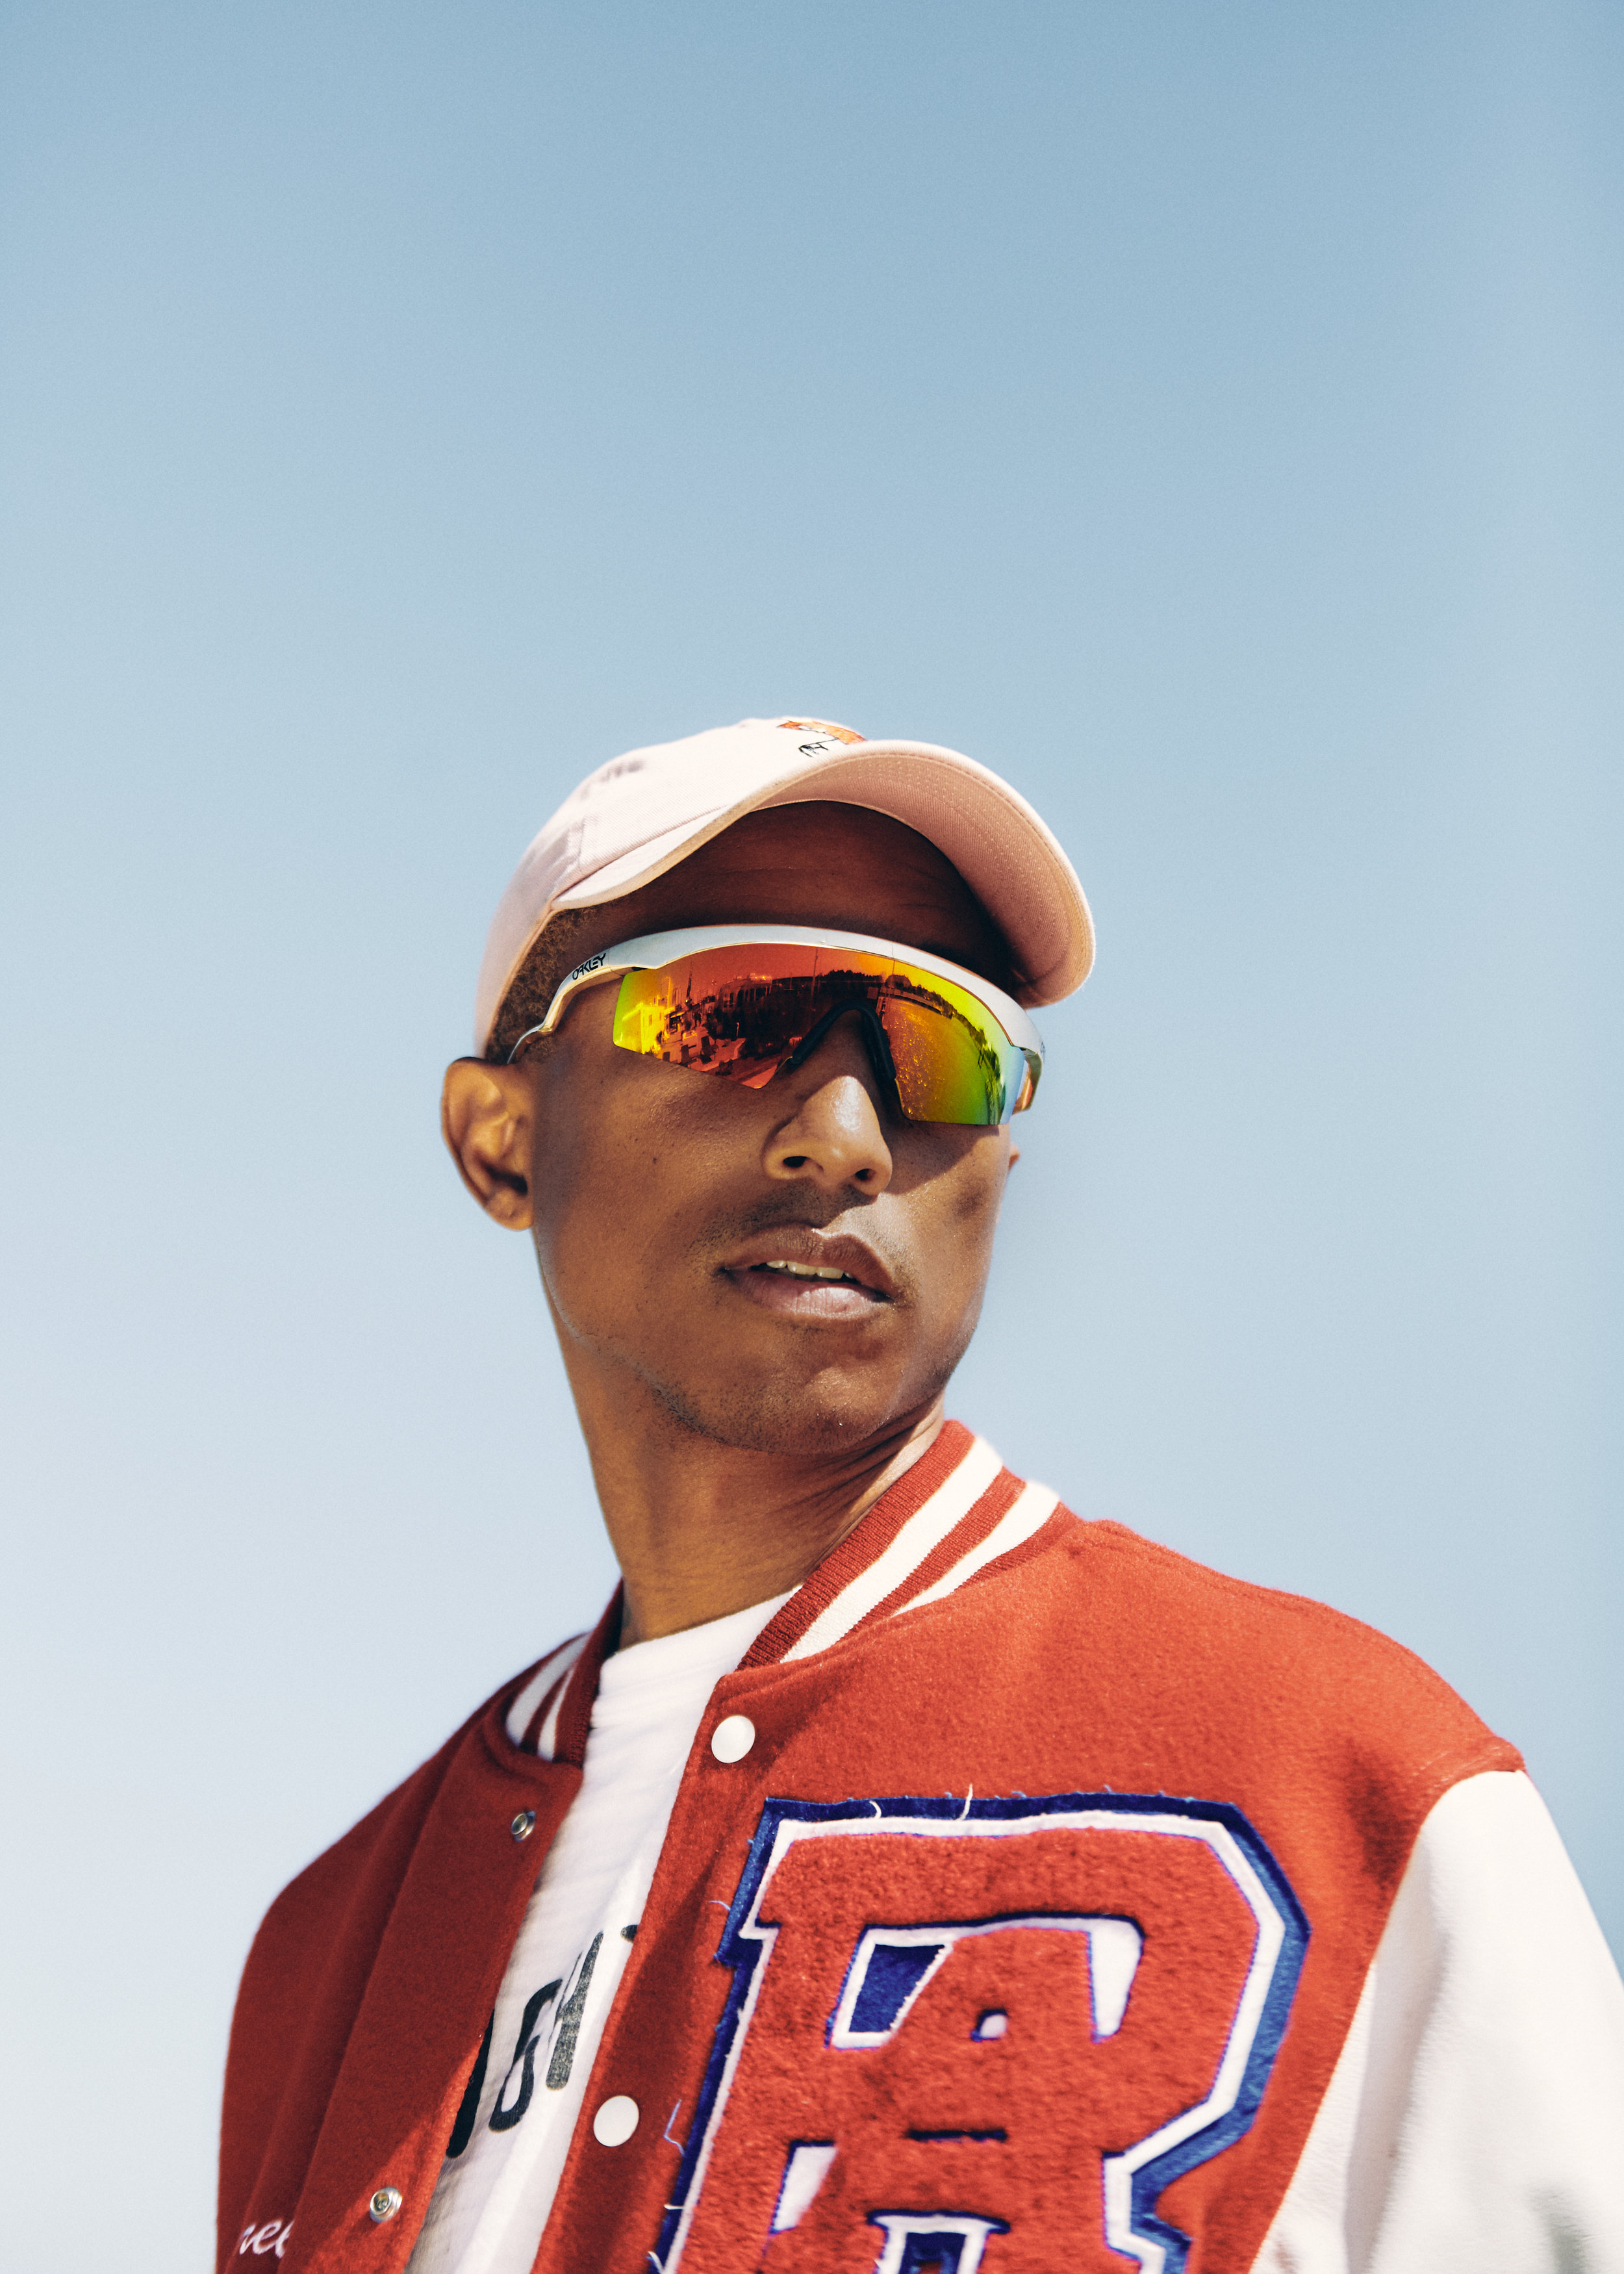 Pharrell Williams for GQ.com